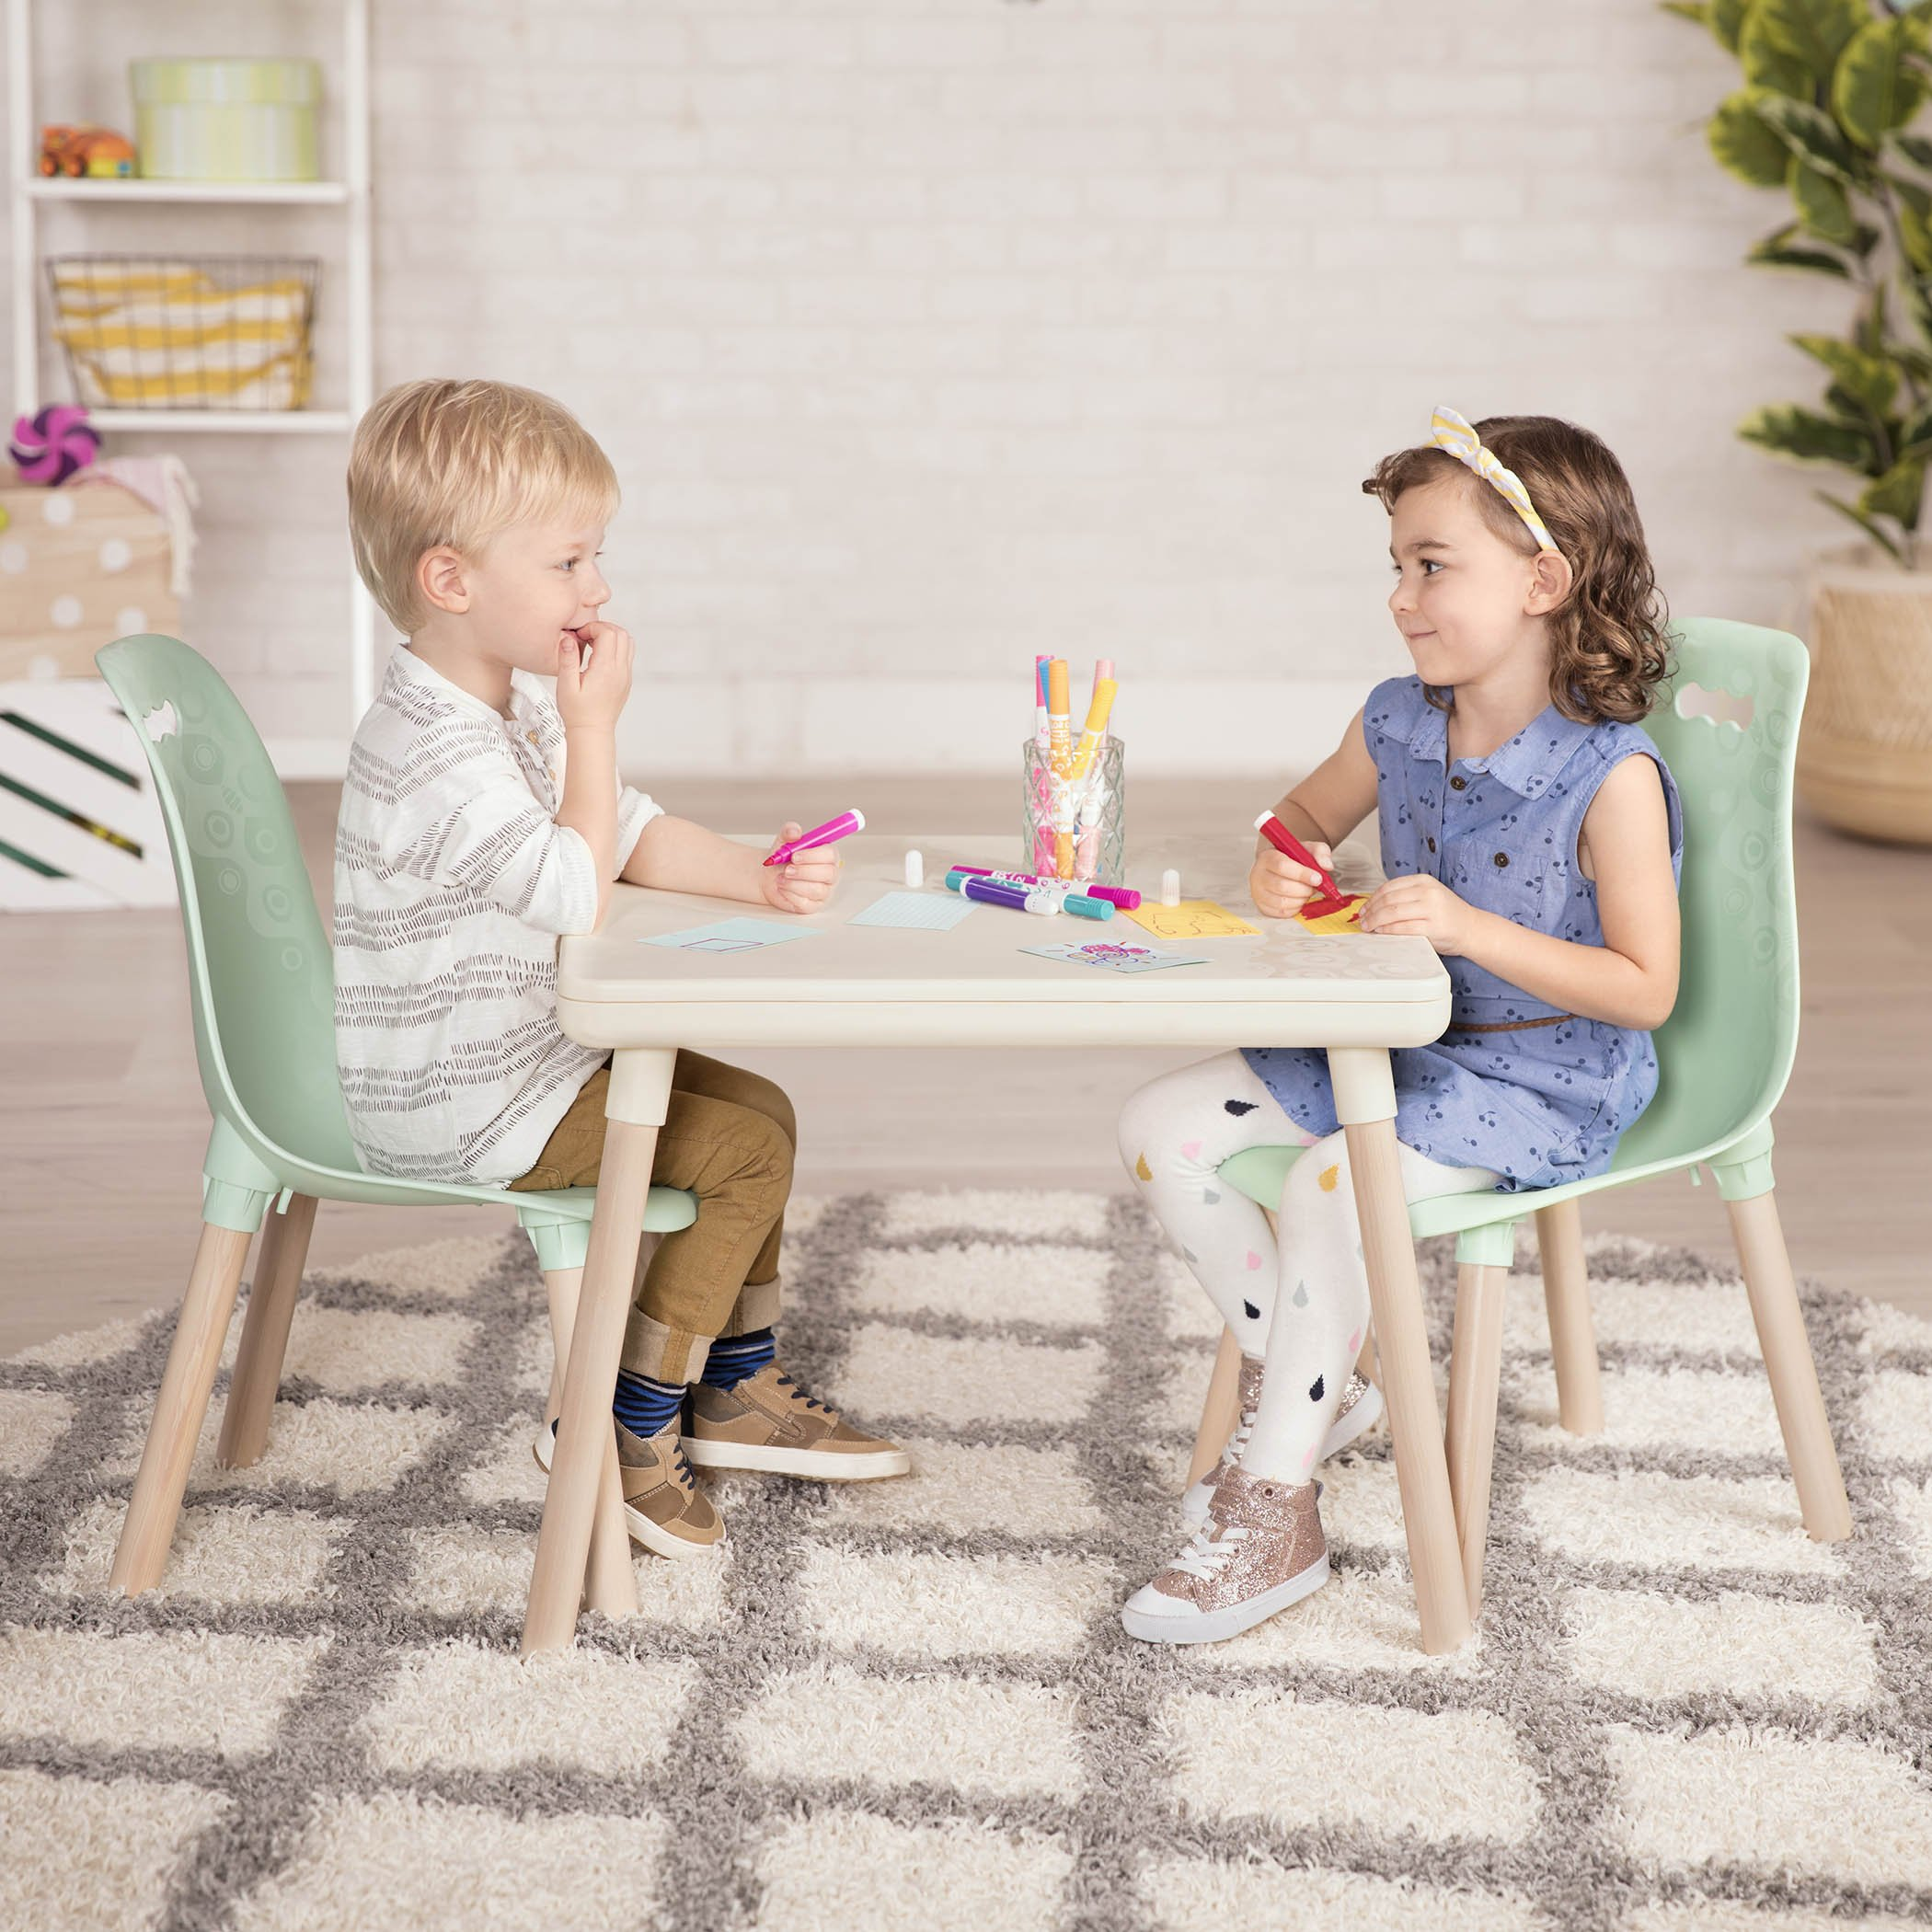 B. spaces by Battat – Kid-Century Modern: Trendy Kids Table and Chairs – 1 Table in Ivory and 2 Chairs in Mint – Kids Furniture Set for Toddlers – Ivory and Mint by B. spaces by Battat (Image #4)